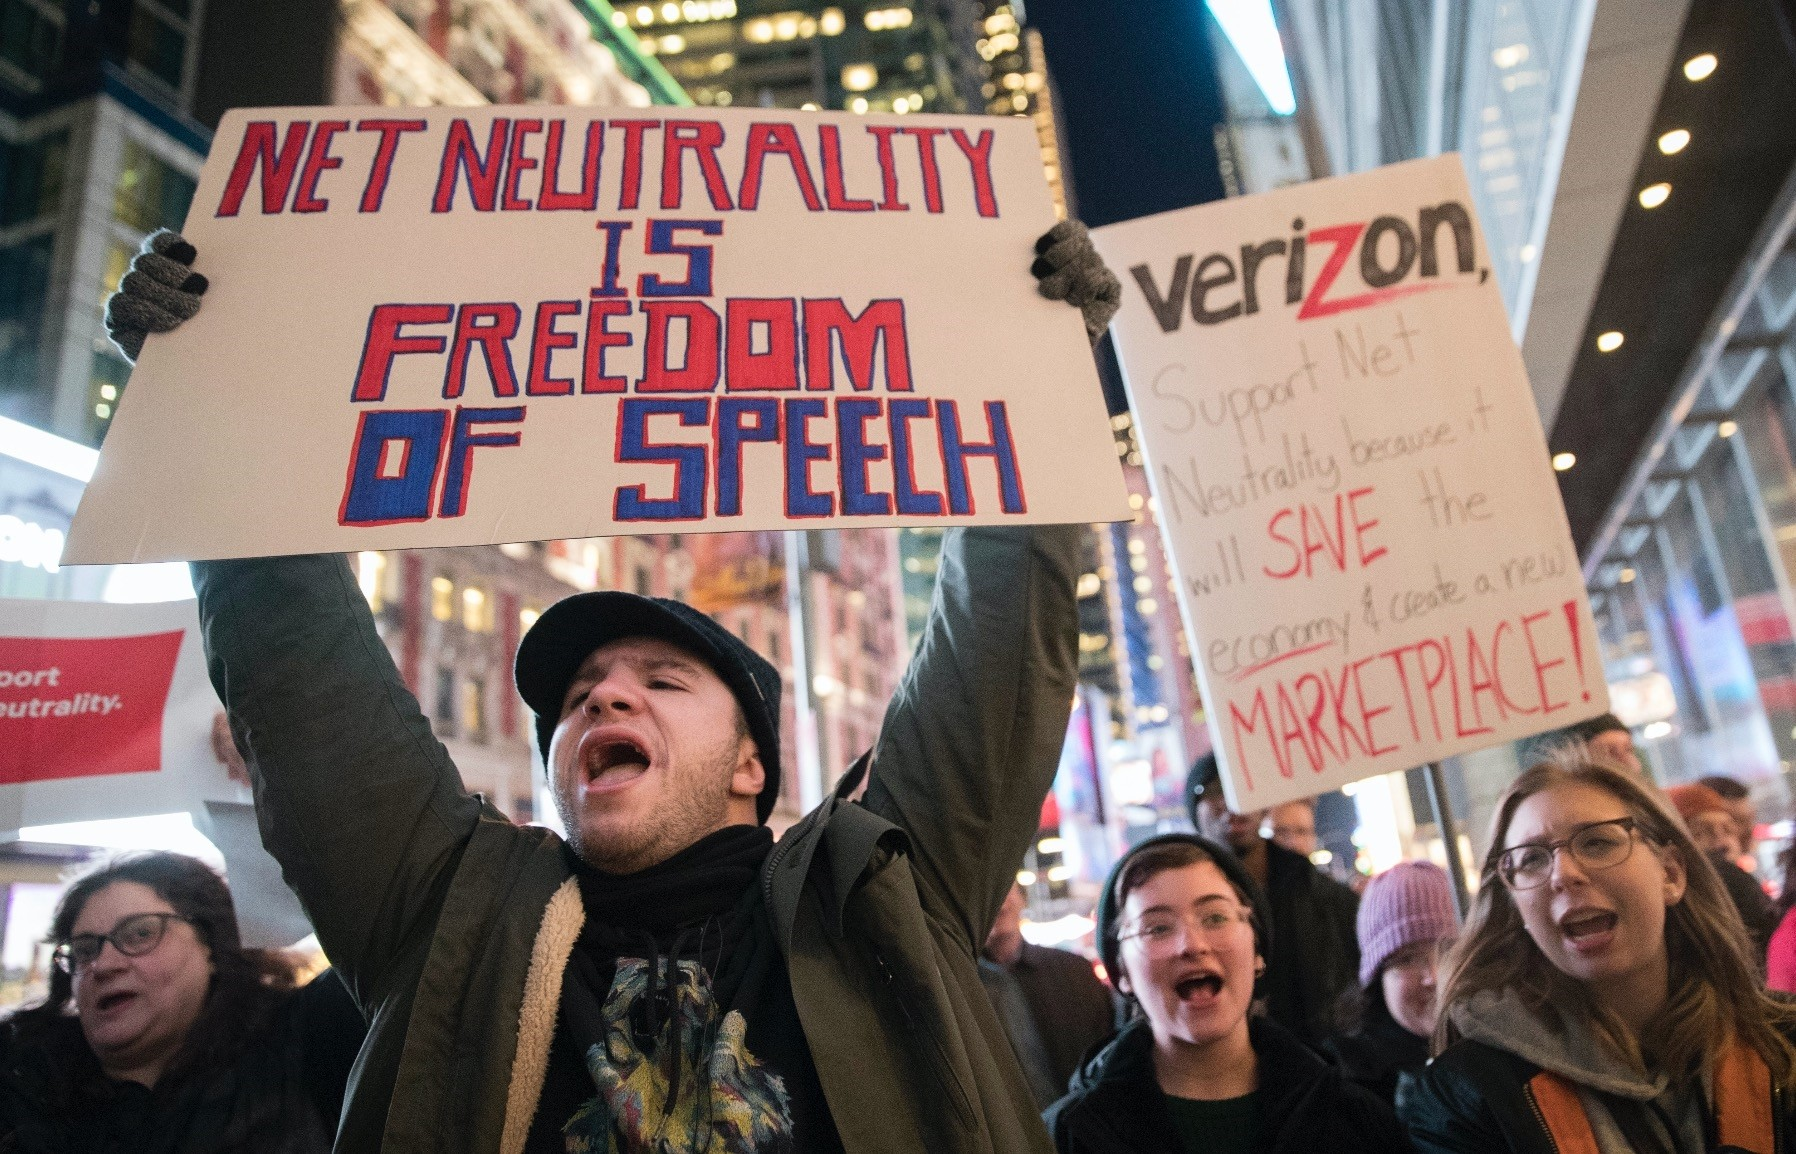 Demonstrators rally in support of net neutrality outside a Verizon store in New York on Dec. 7, 2017.